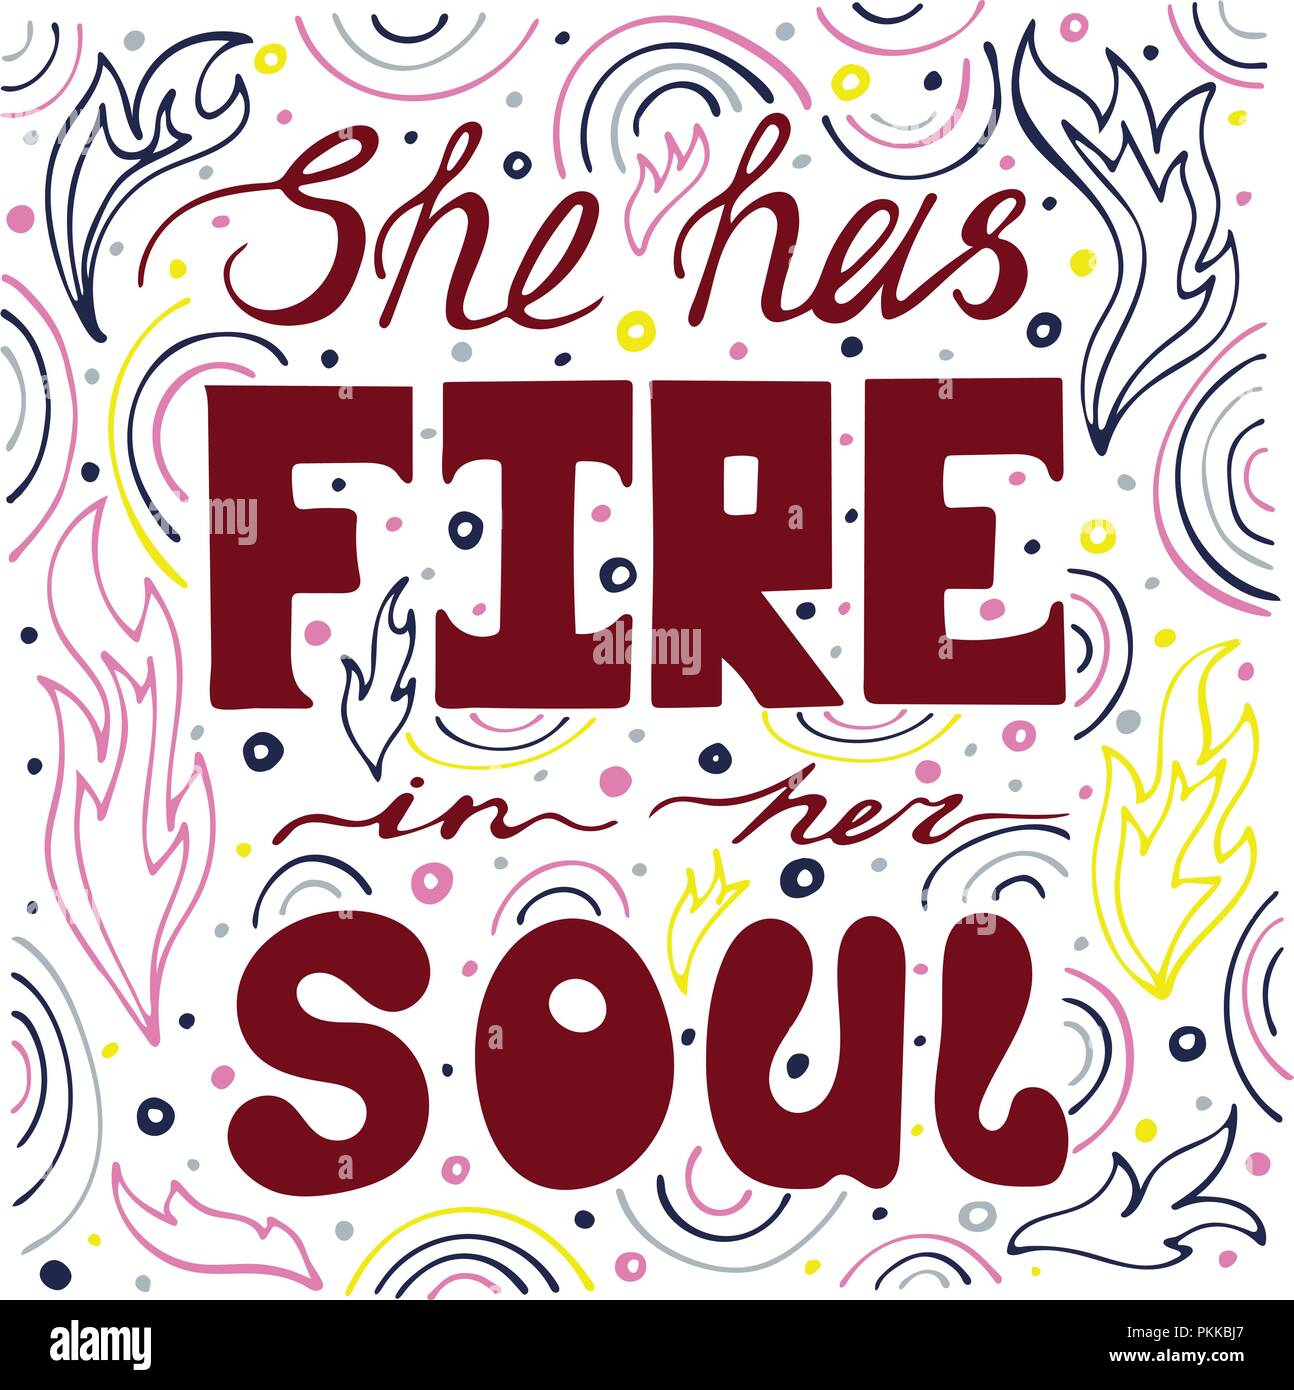 Unique Hand Drawn Lettering Quote With A Phrase She Has Fire In Her